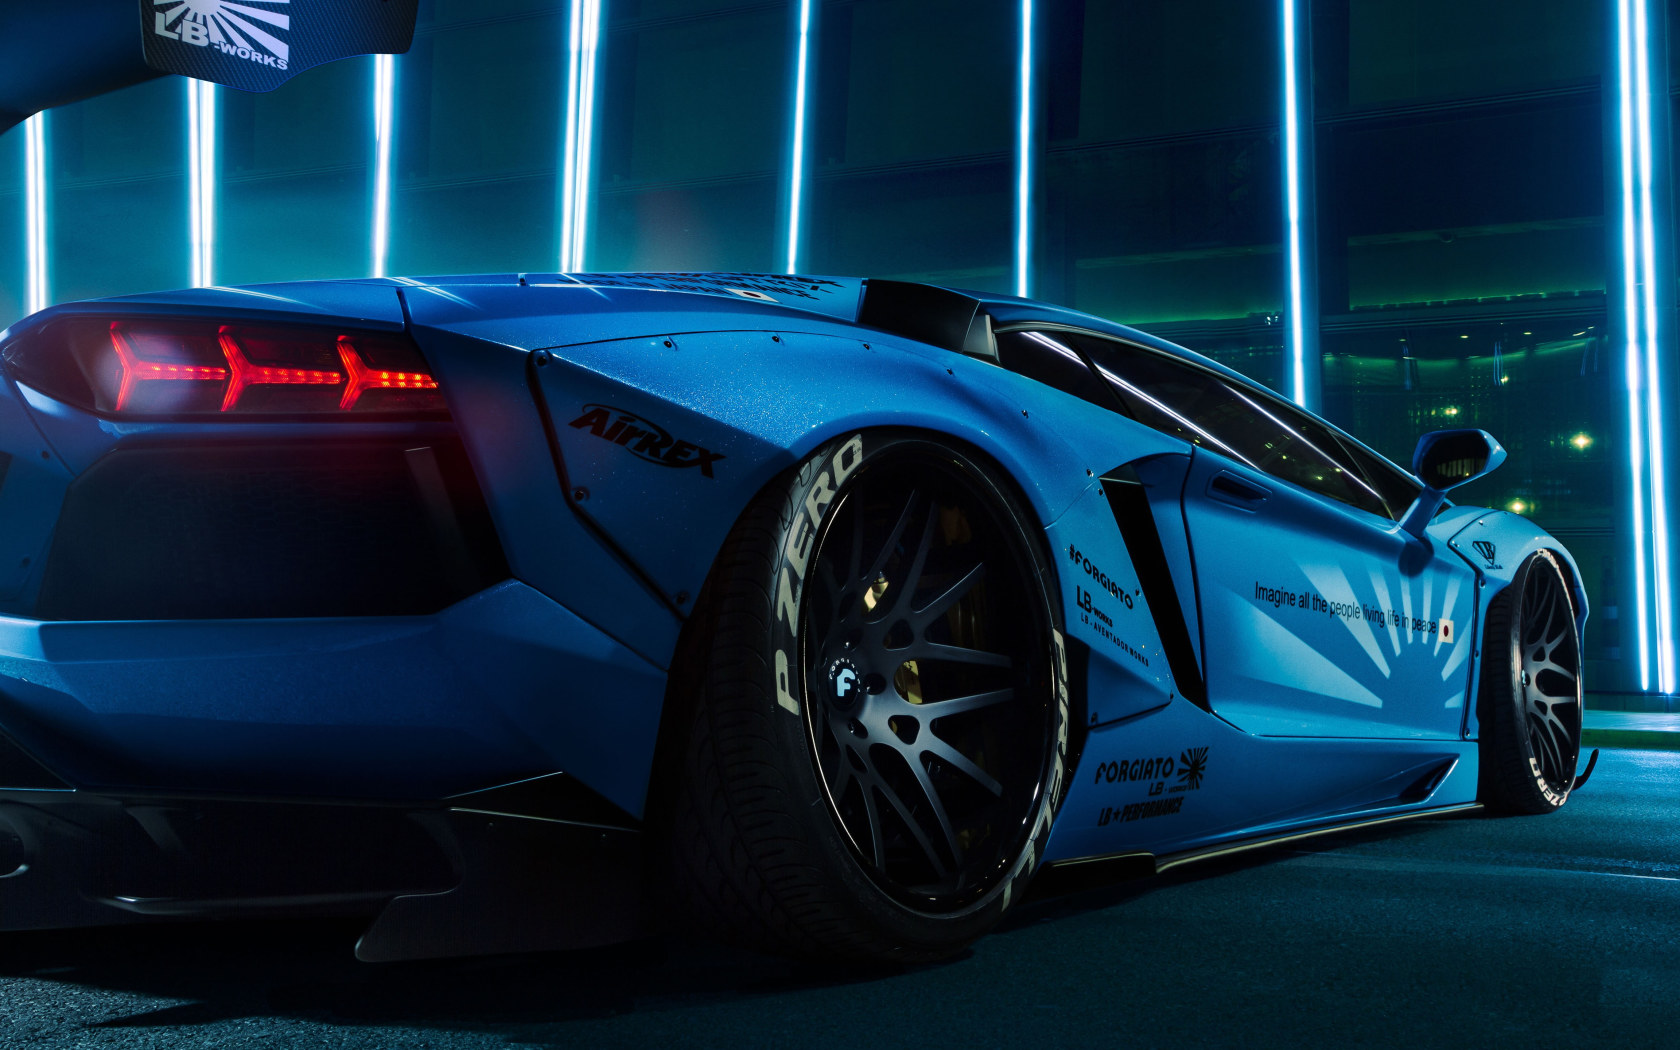 Car Wallpaper Sports Car Supercar Lamborghini Aventador Blue Car Wallpaper For You Hd Wallpaper For Desktop Mobile